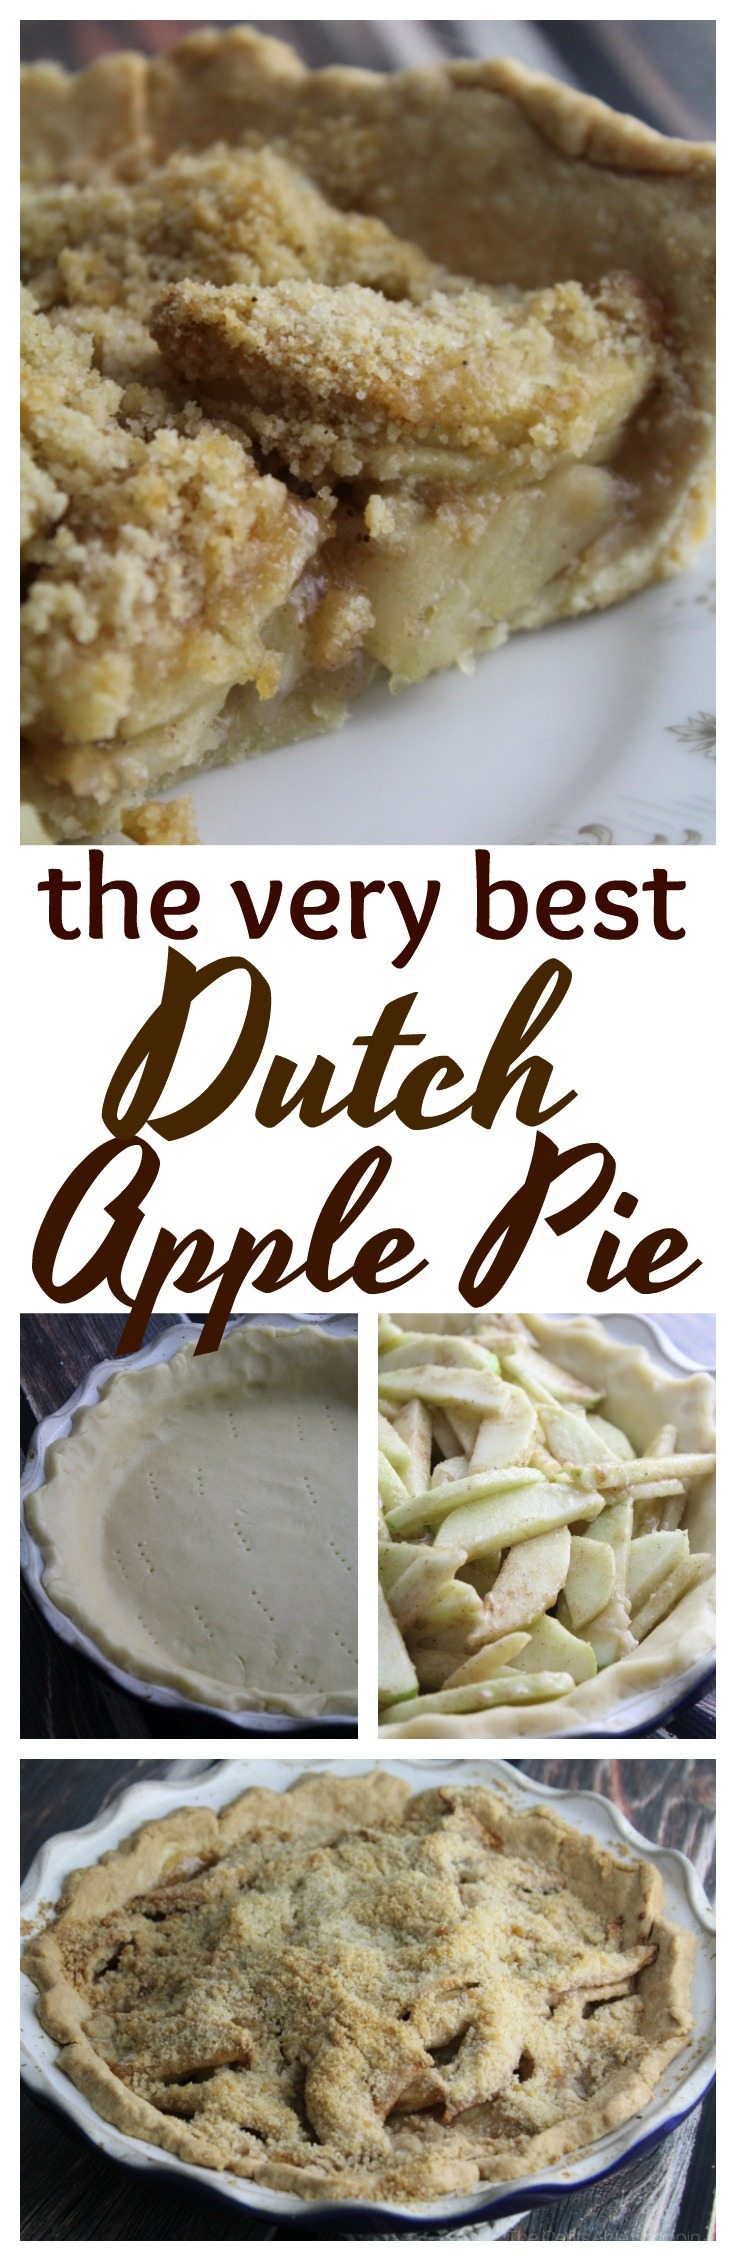 Cooler fall weather is not complete without apple pie - this Dutch Apple Pie is one of the best you will ever eat!